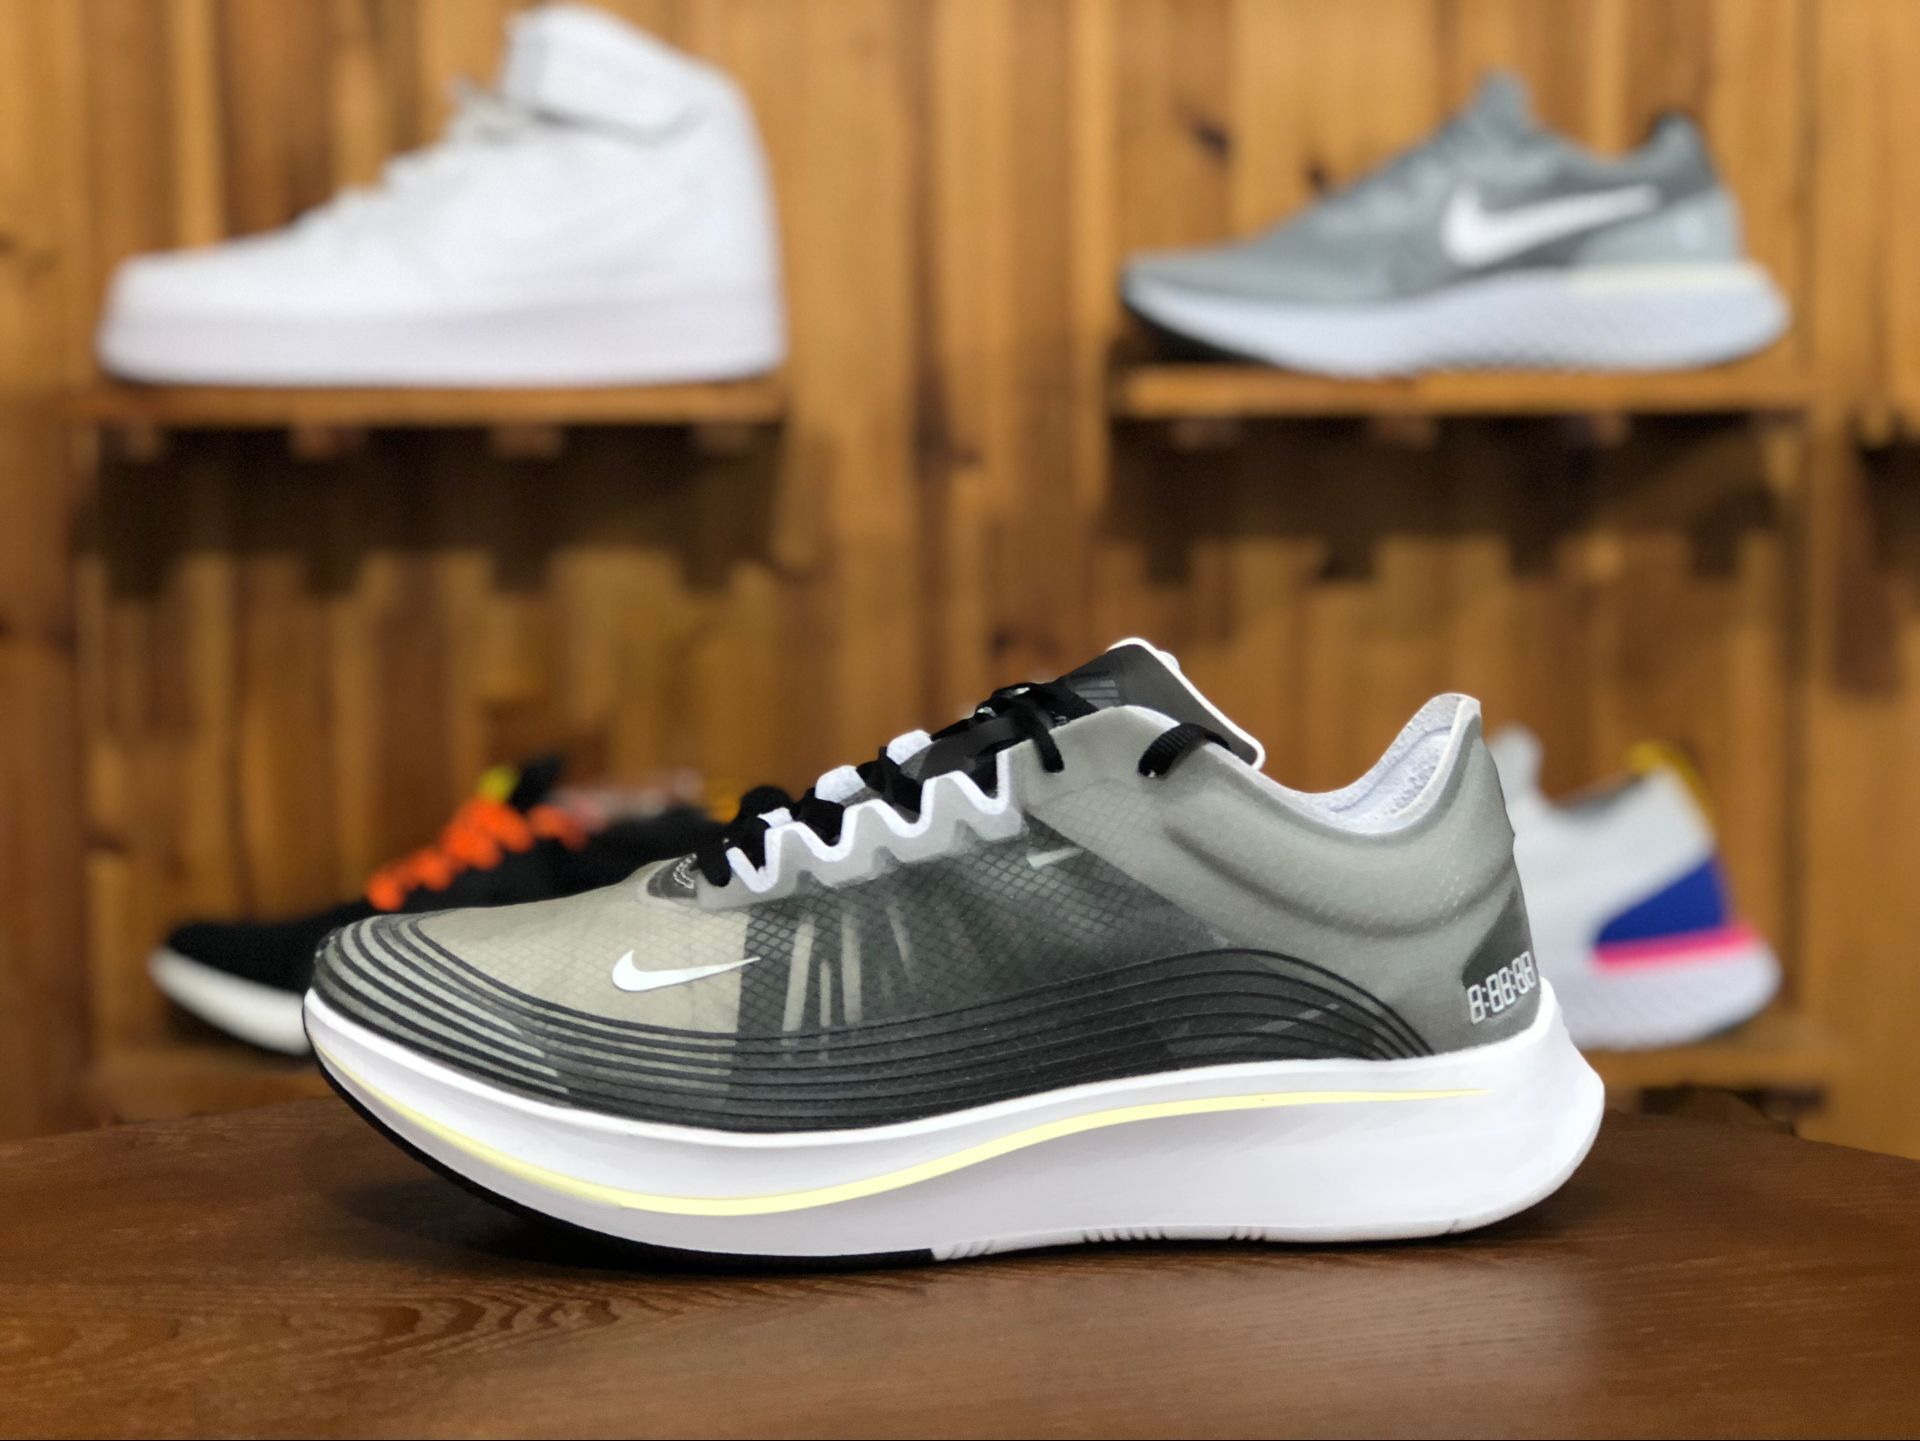 finest selection 19400 fc89d The Nike Zoom Fly SP Unisex Running Shoe is designed to meet the demands of  your